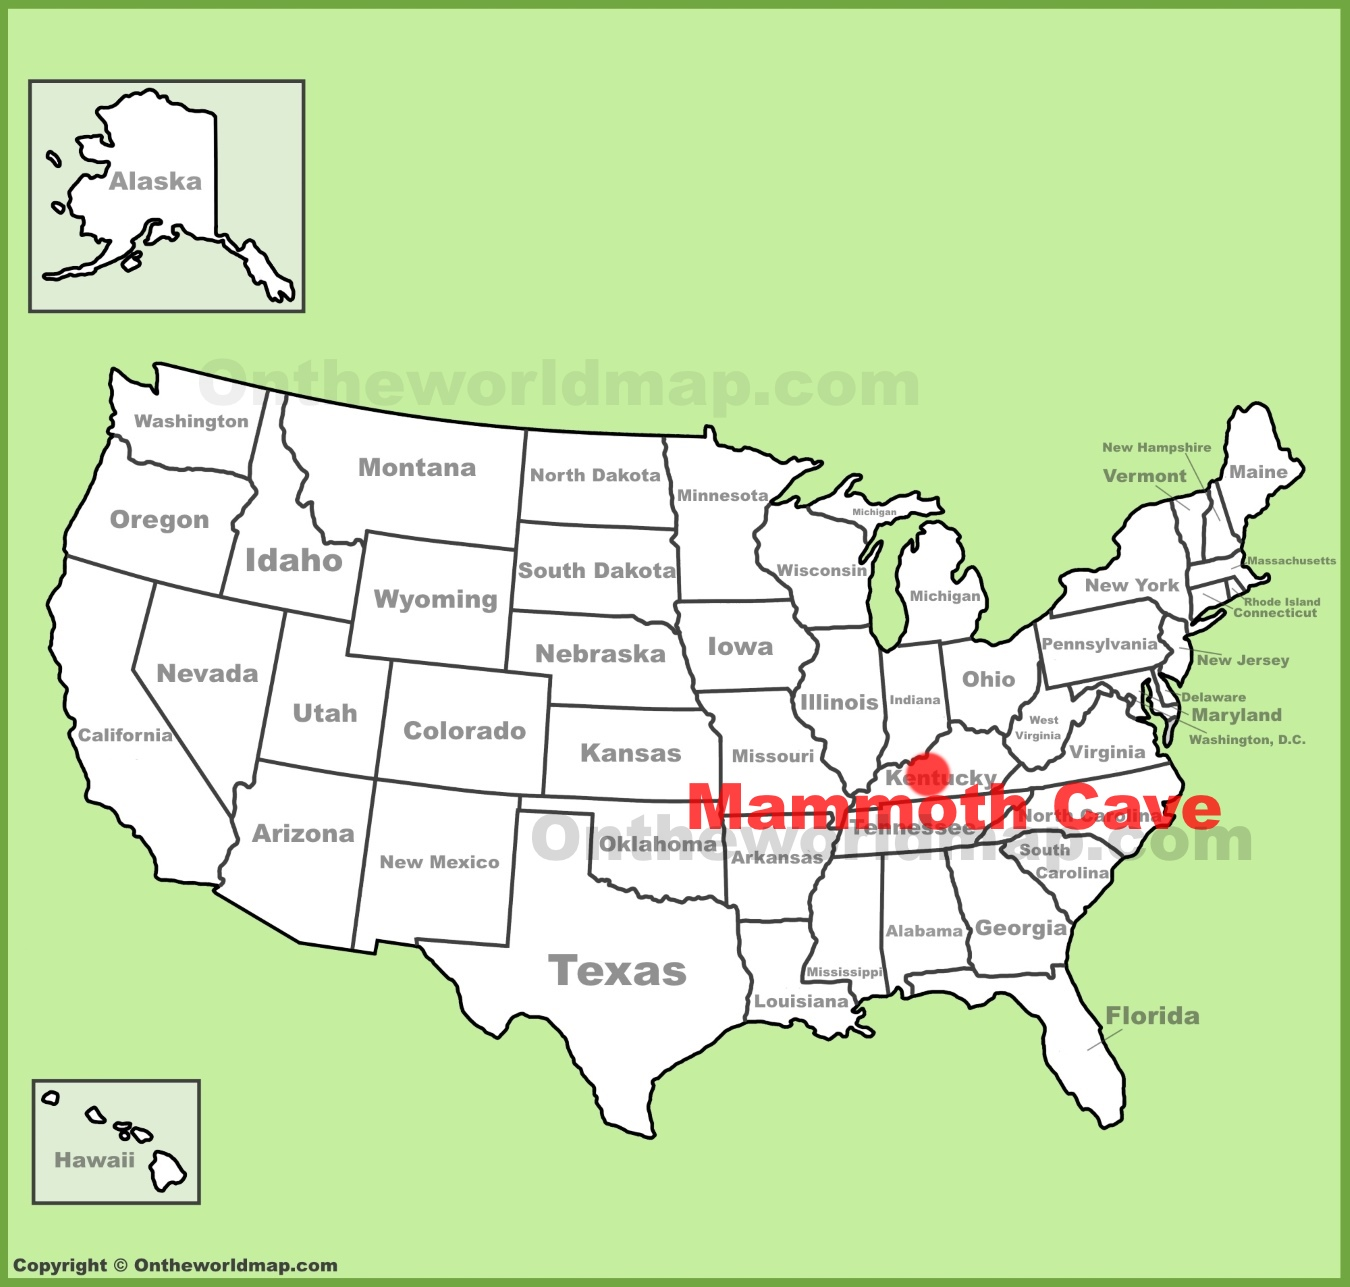 Mammoth Cave Maps | USA | Maps of Mammoth Cave National Park